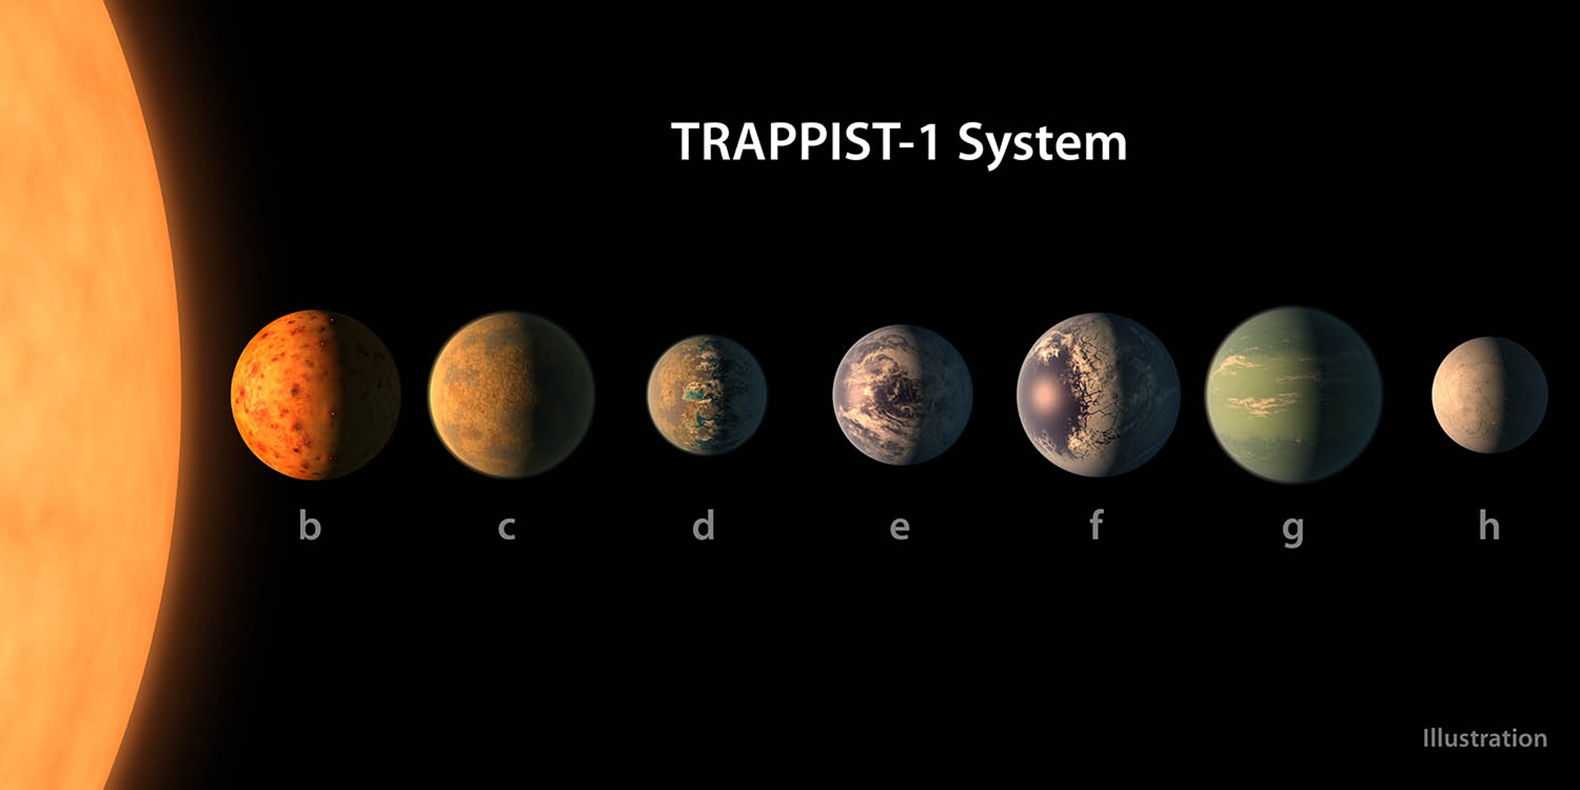 NASA discovers 7 Earth-sized planets outside our solar system